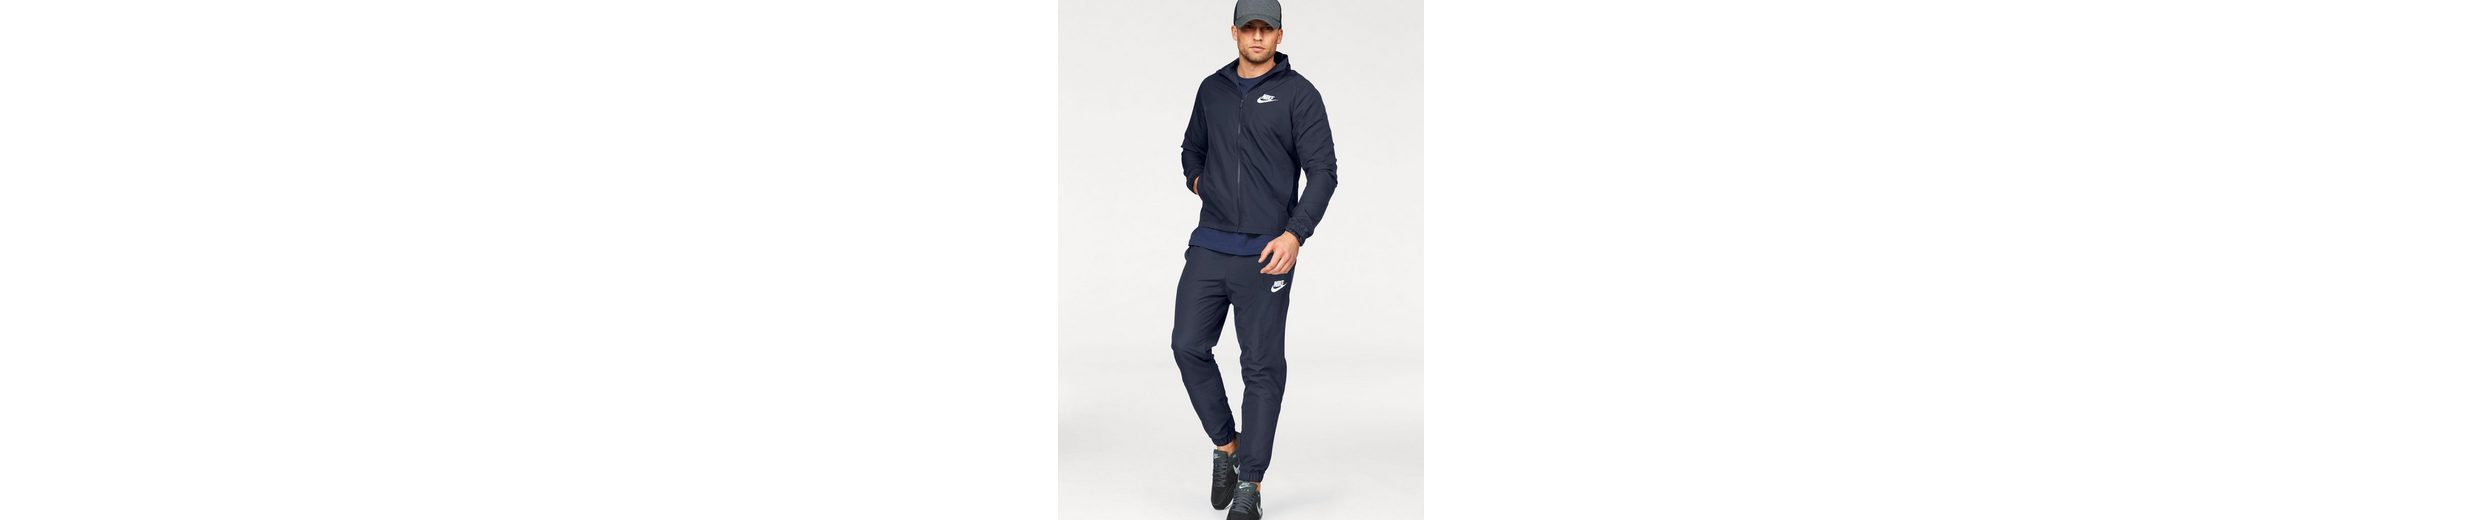 Nike Sportswear Trainingsanzug TRACK SUIT WOVEN BASIC